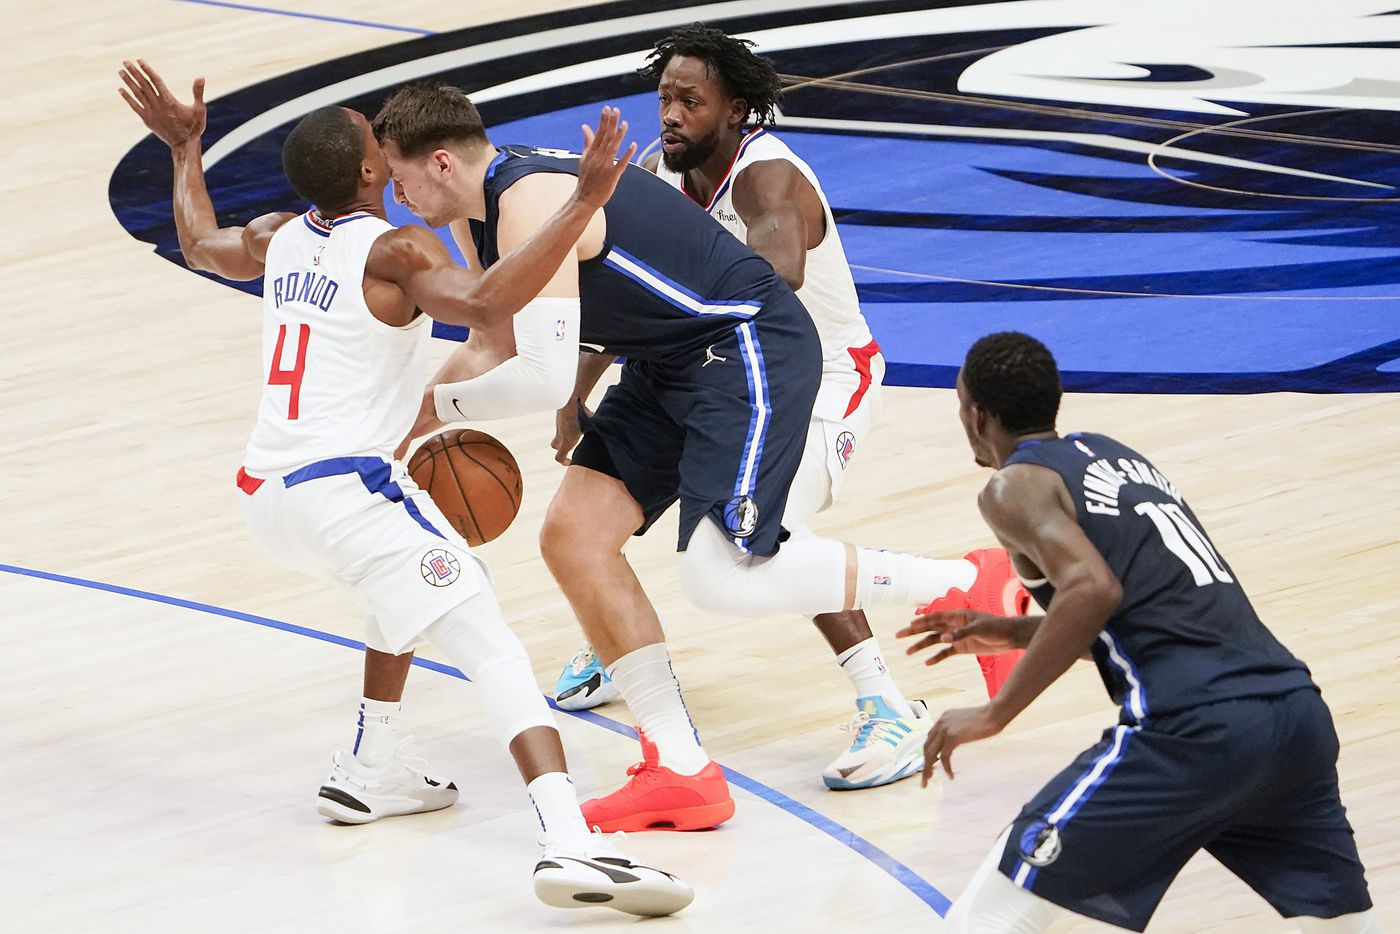 Dallas Mavericks guard Luka Doncic (77) collides with LA Clippers guard Rajon Rondo (4) as he gets past guard Patrick Beverley (21) during the first quarter of an NBA playoff basketball game at American Airlines Center on Friday, May 28, 2021, in Dallas. Doncic was called for a foul on the play.